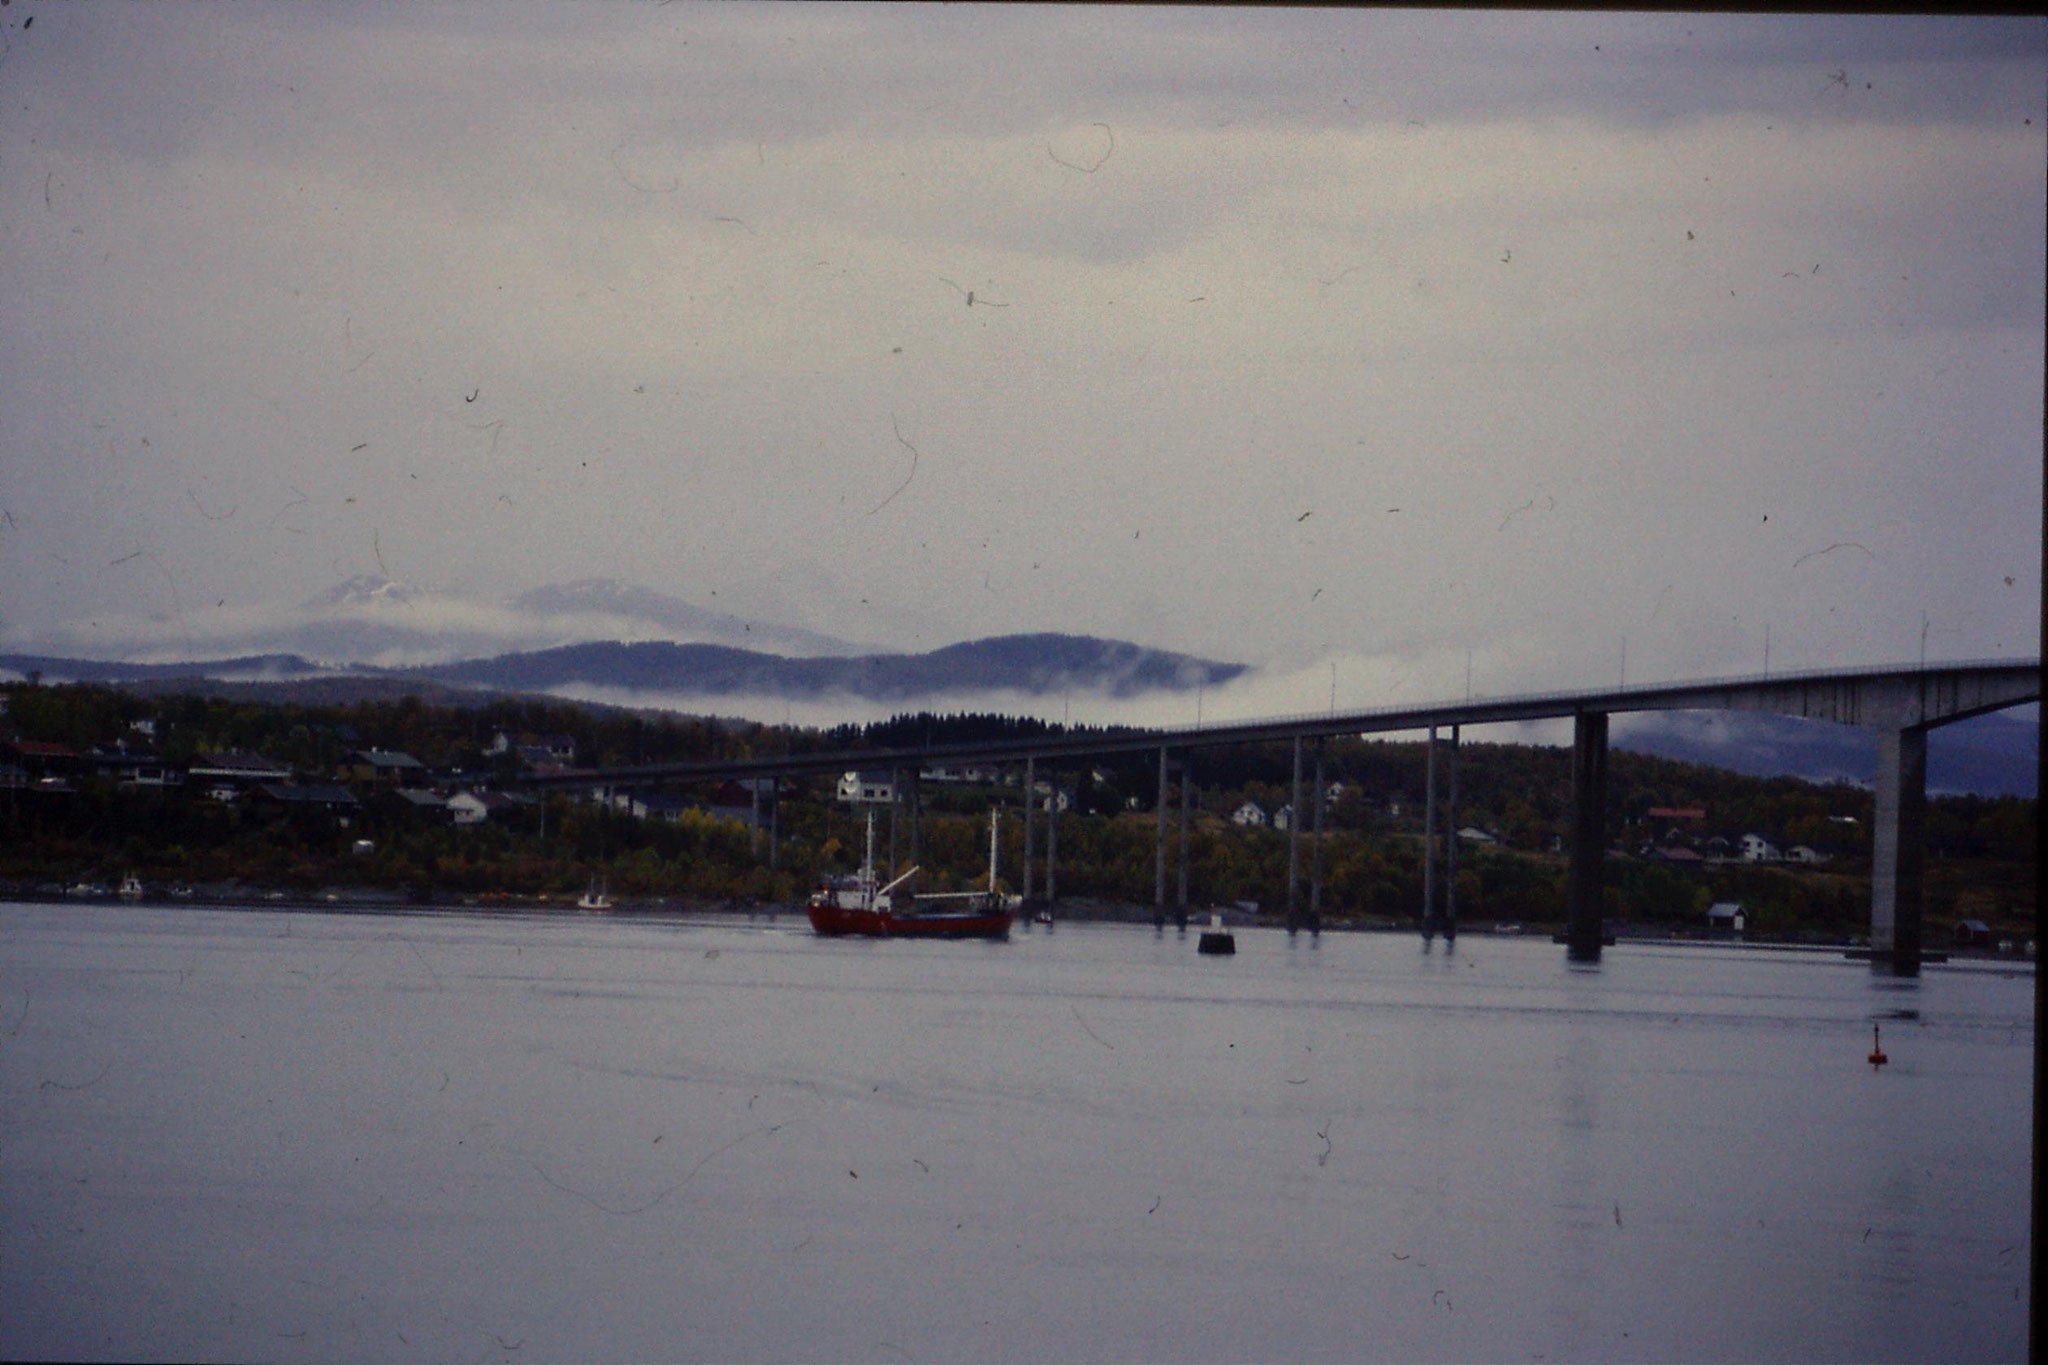 25/9/1988: 28: fishing boat going through bridge